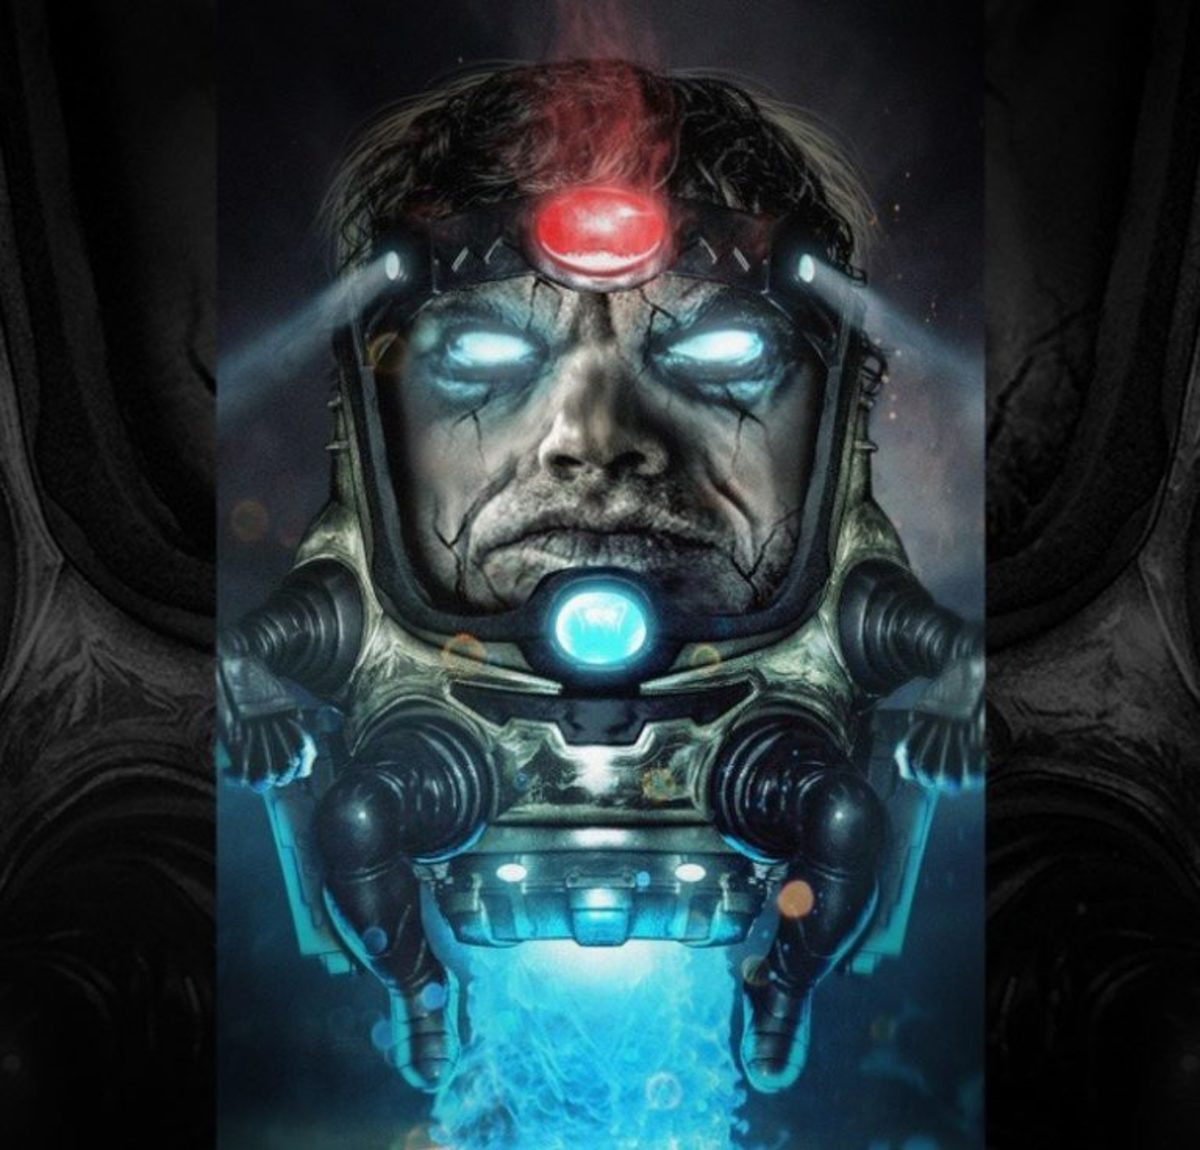 A Peter Dinklage MODOK would be awesome